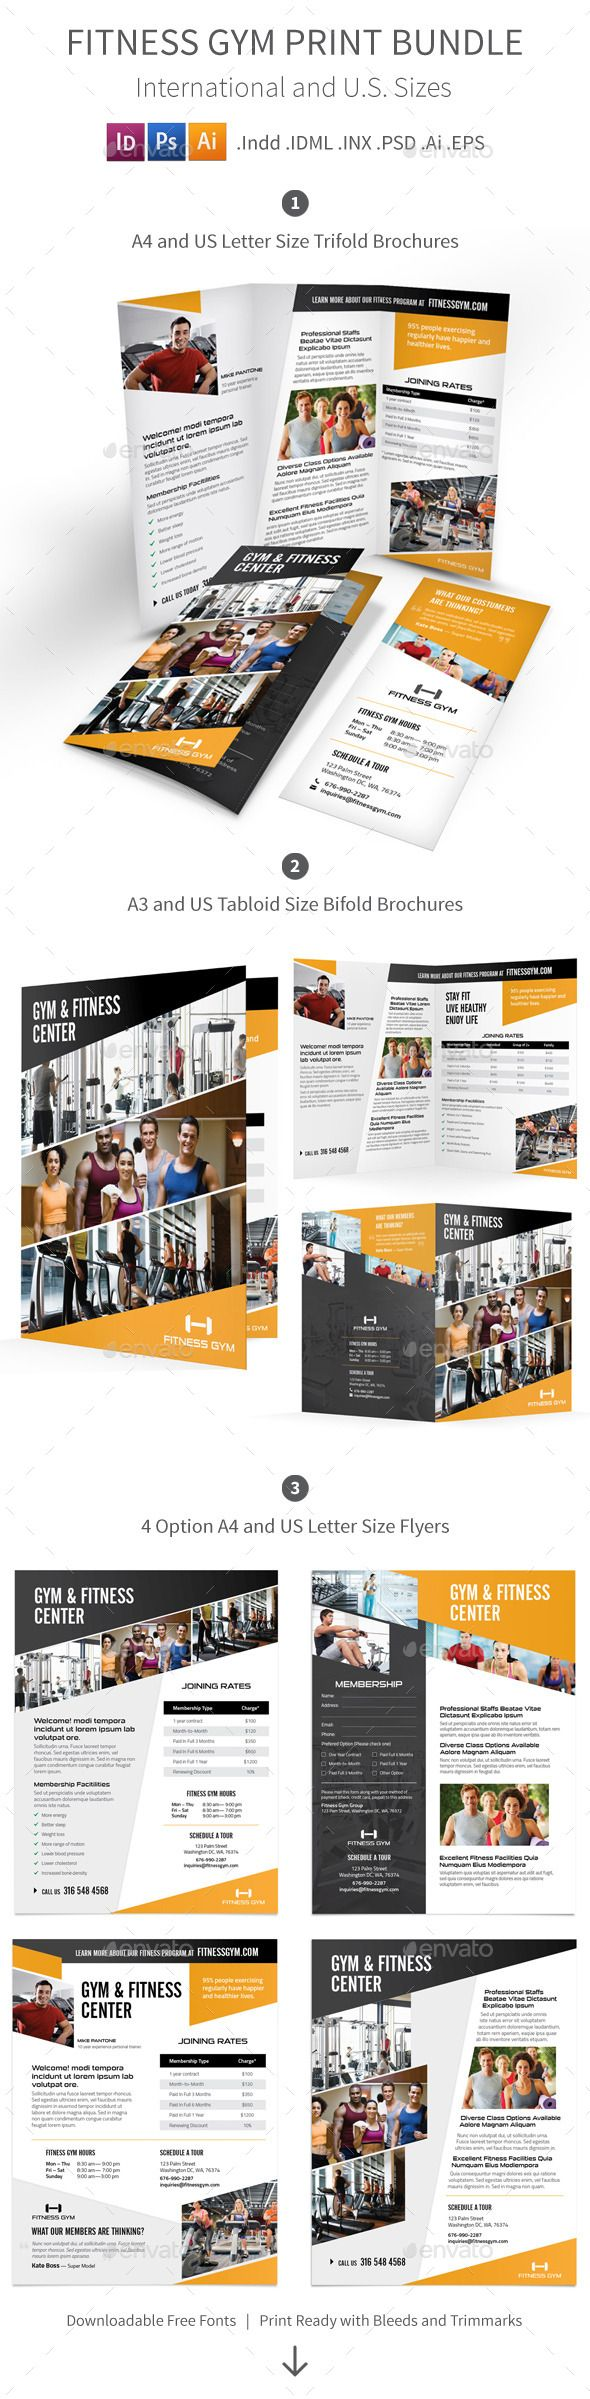 Best Fitness  Gym Flyers Images On   Fitness Flyer